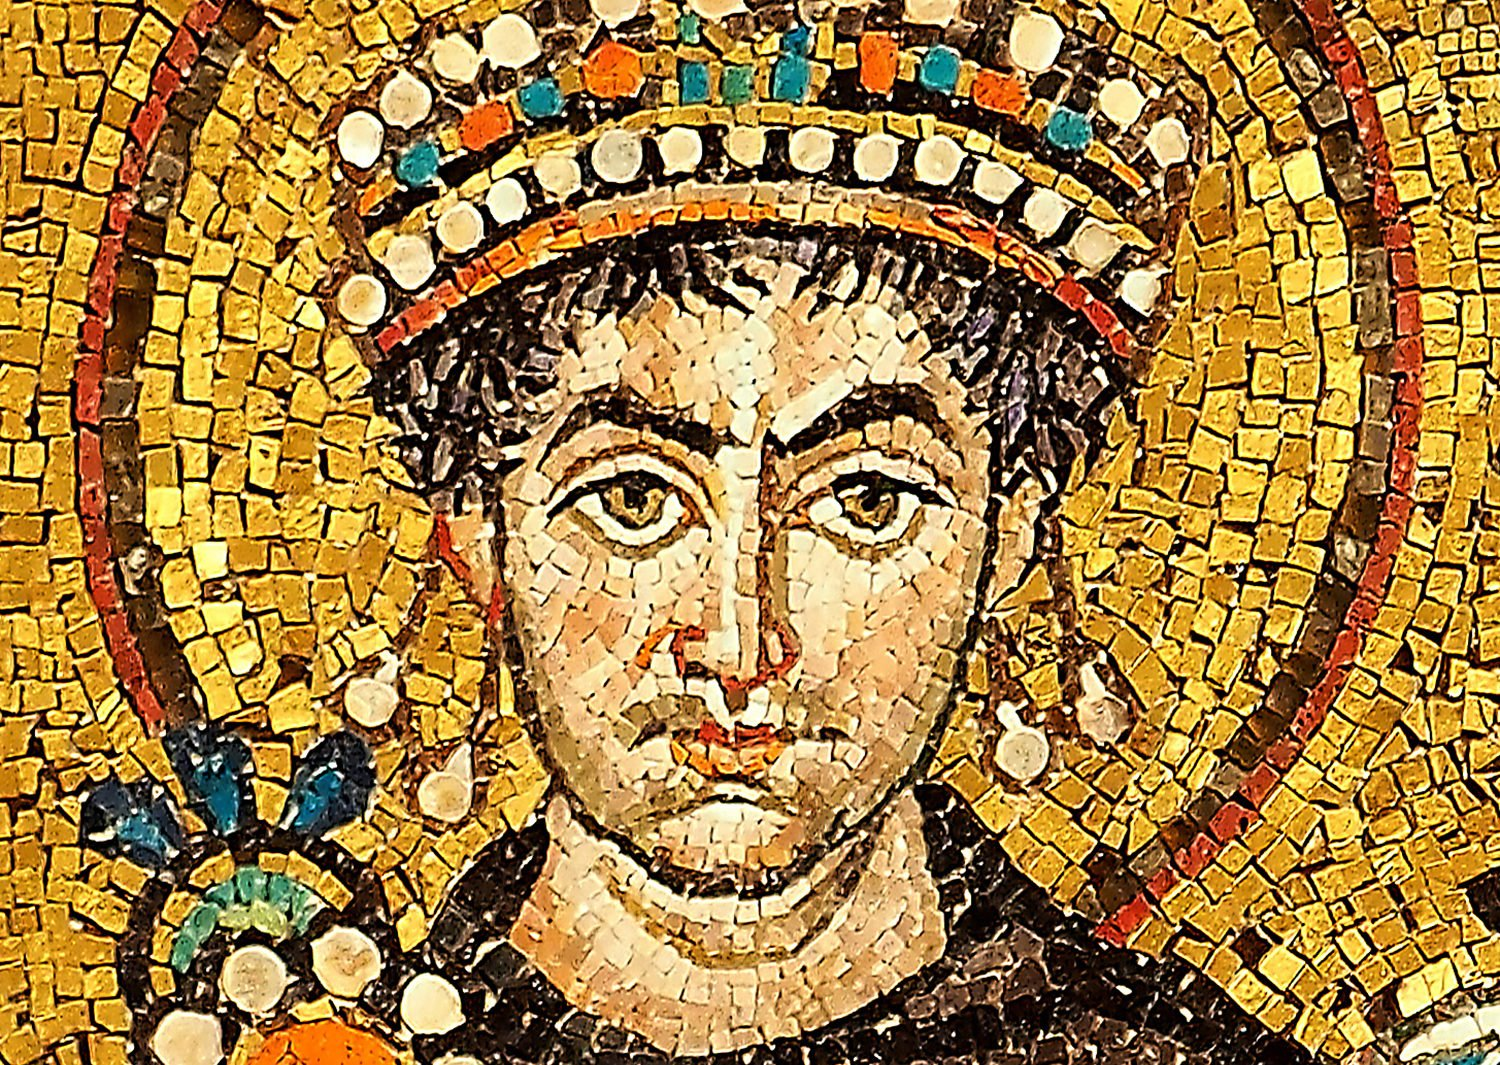 The Plague of Justinian may not have that devastating, researchers suggest